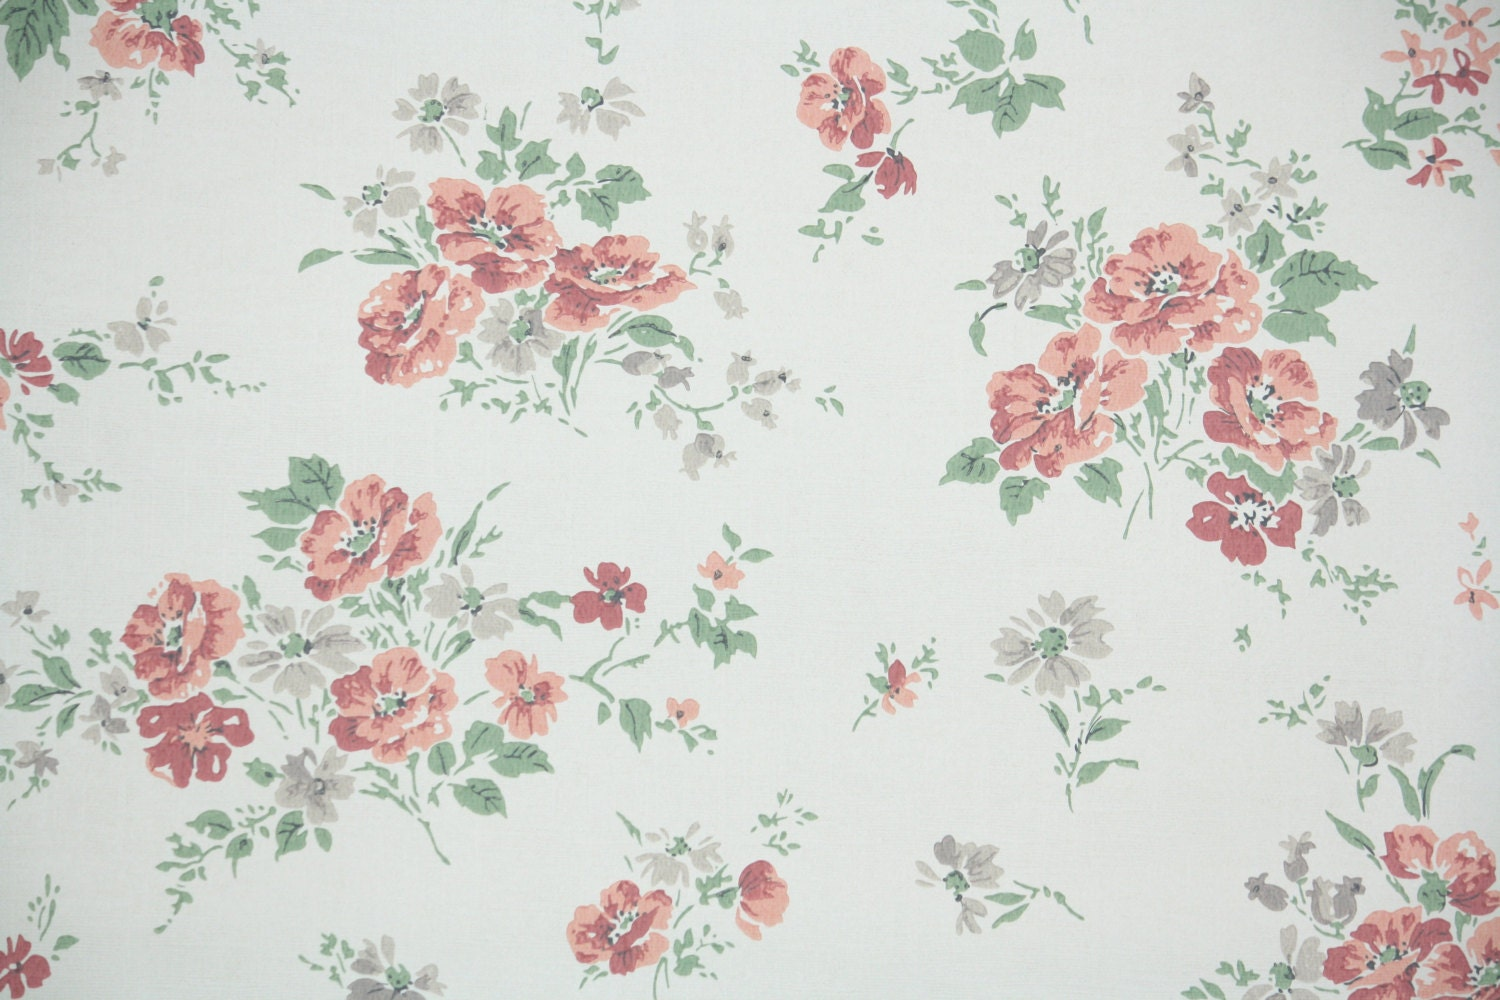 1950s vintage wallpaper by the yard floral vintage wallpaper for Tumblr tapete